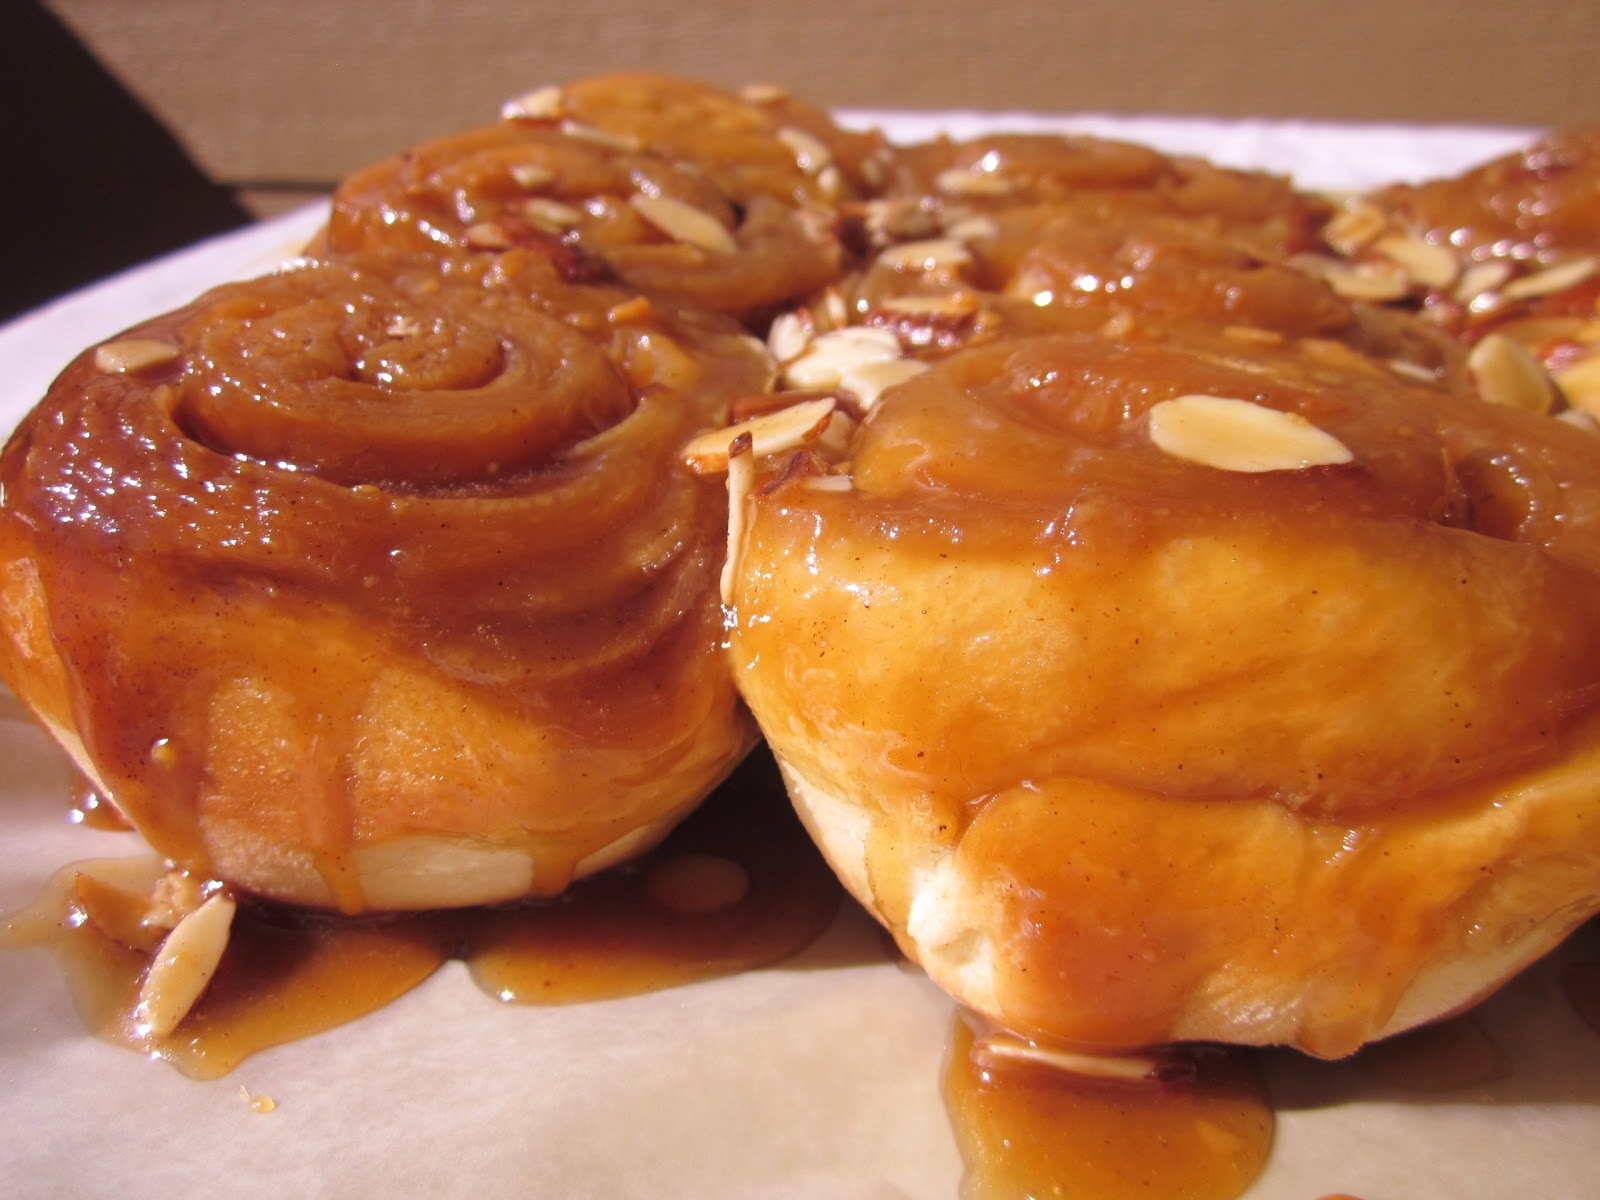 Caramel Almond Sticky Buns (inspired by Taste of Home: Fall Baking)